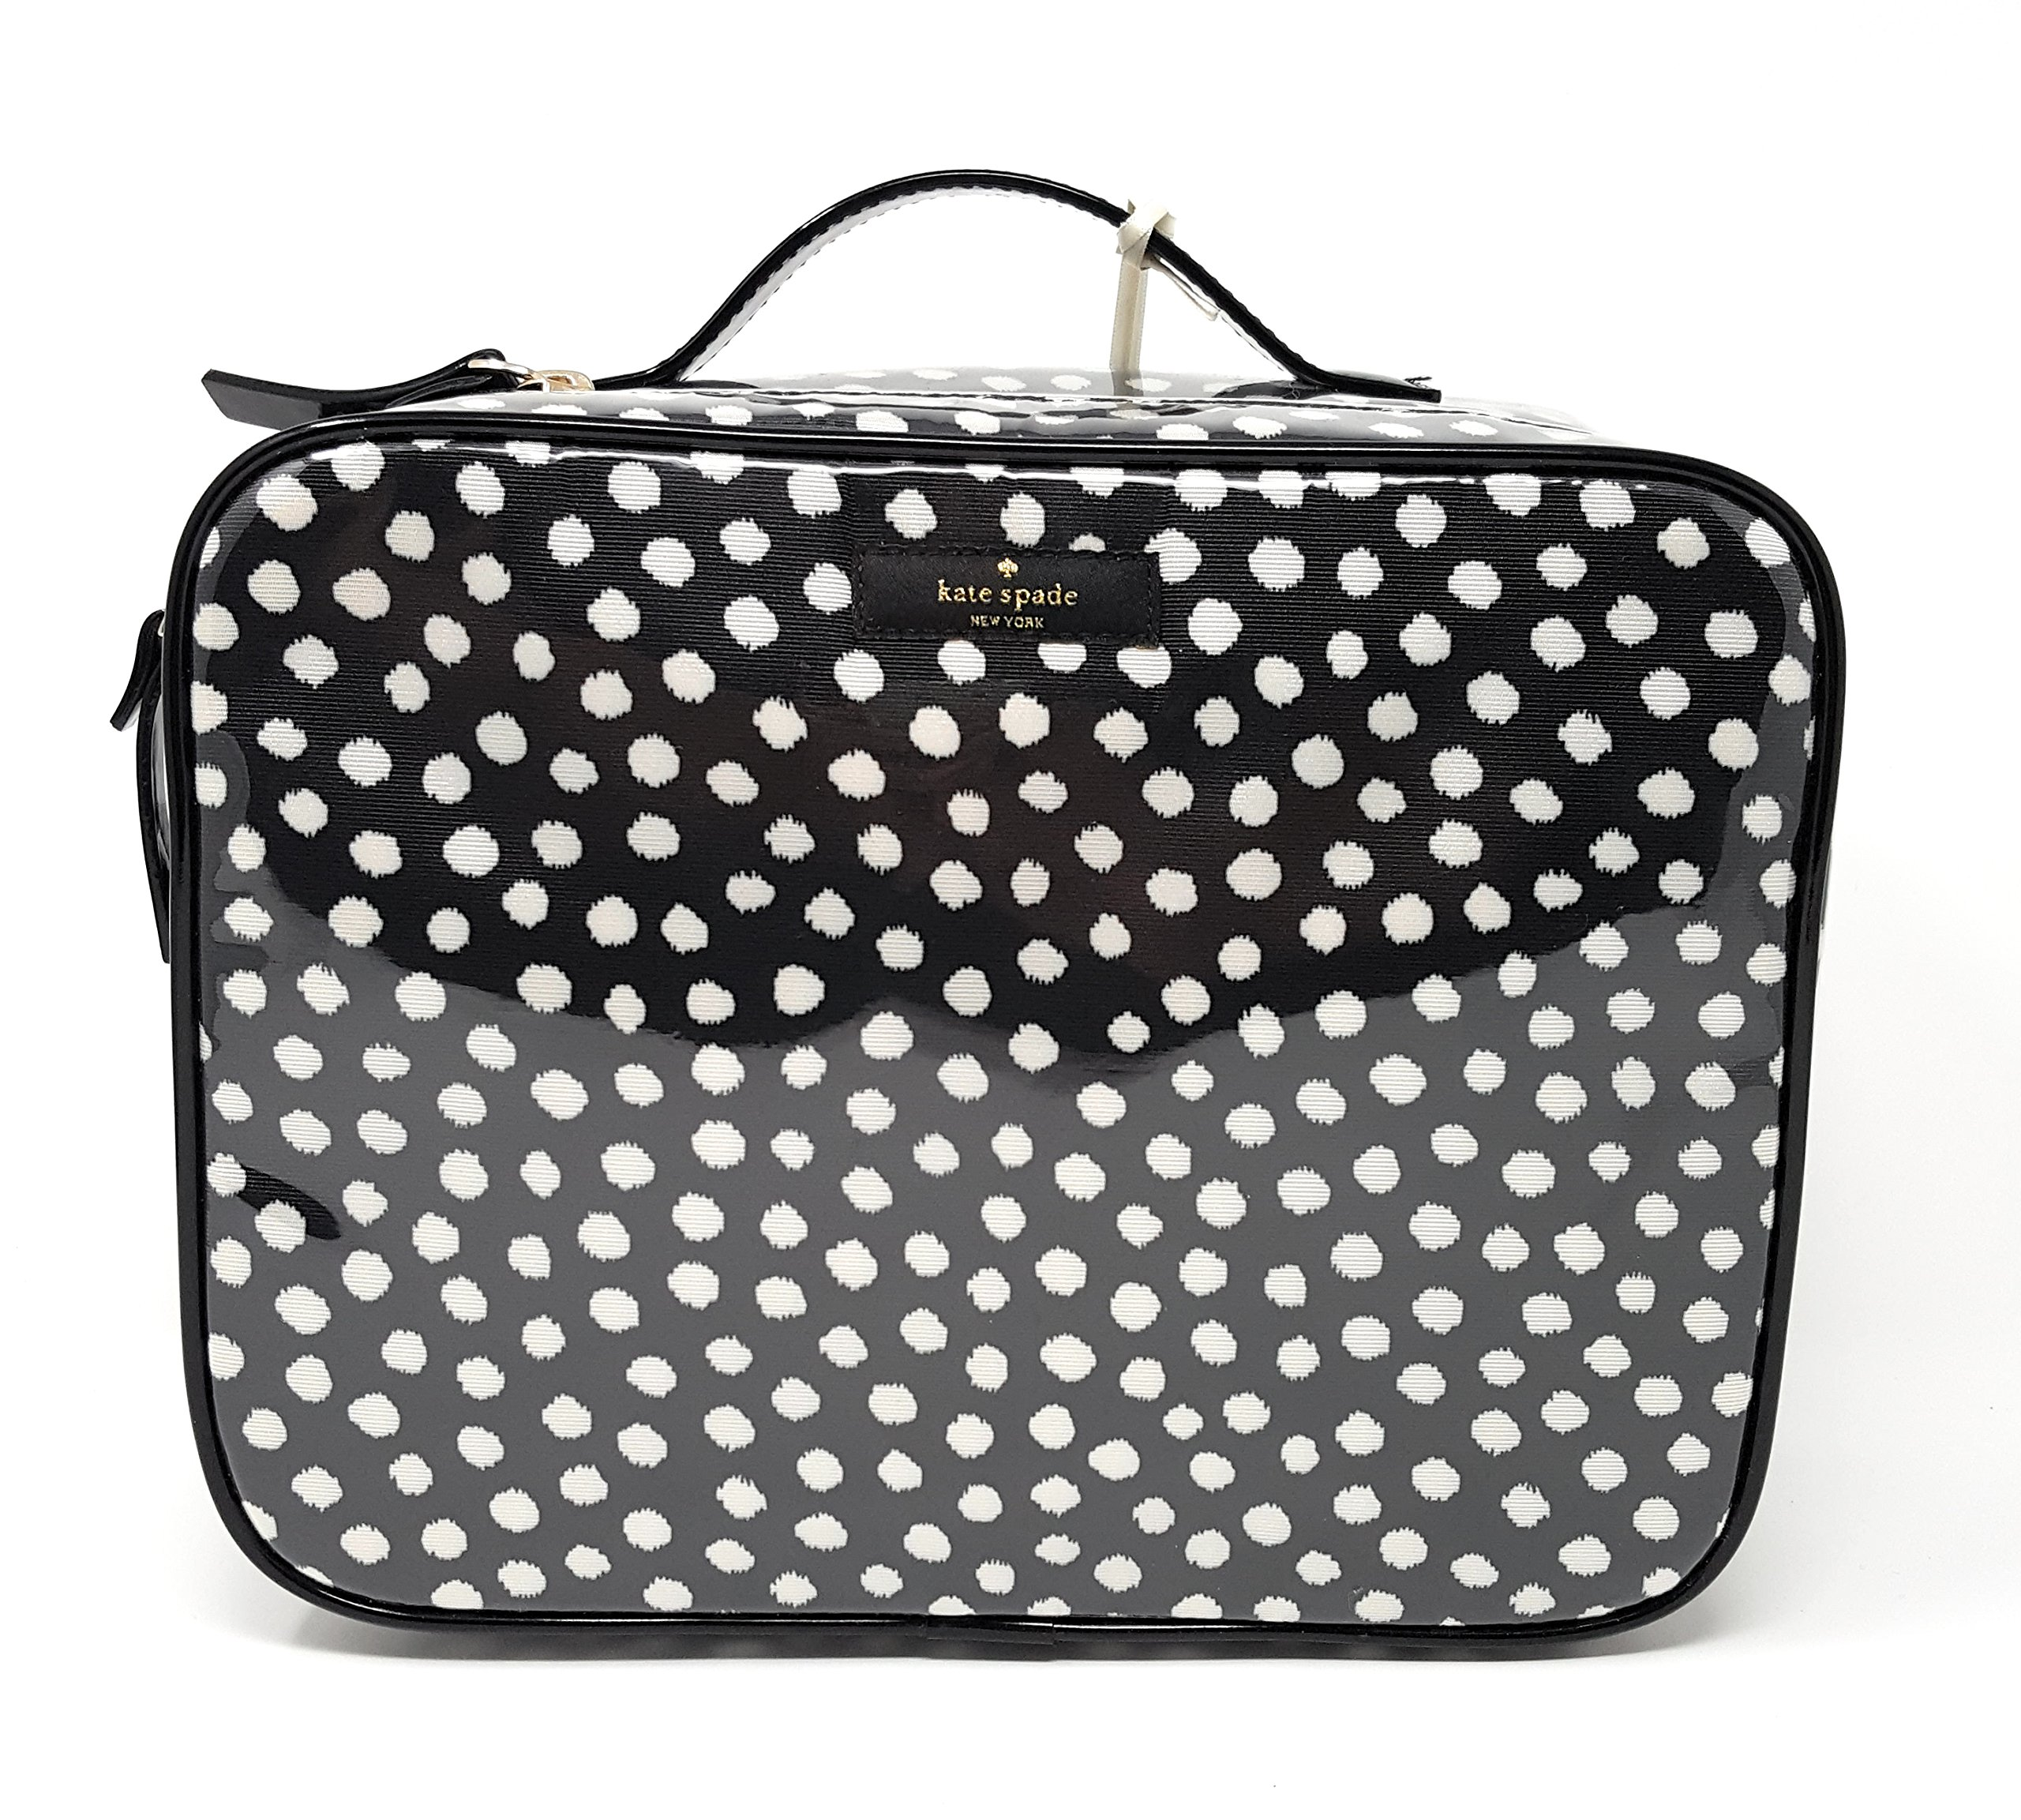 Kate Spade New York Brook Place Martie Multi-Compartment Cosmetics Travel Case by Kate Spade New York